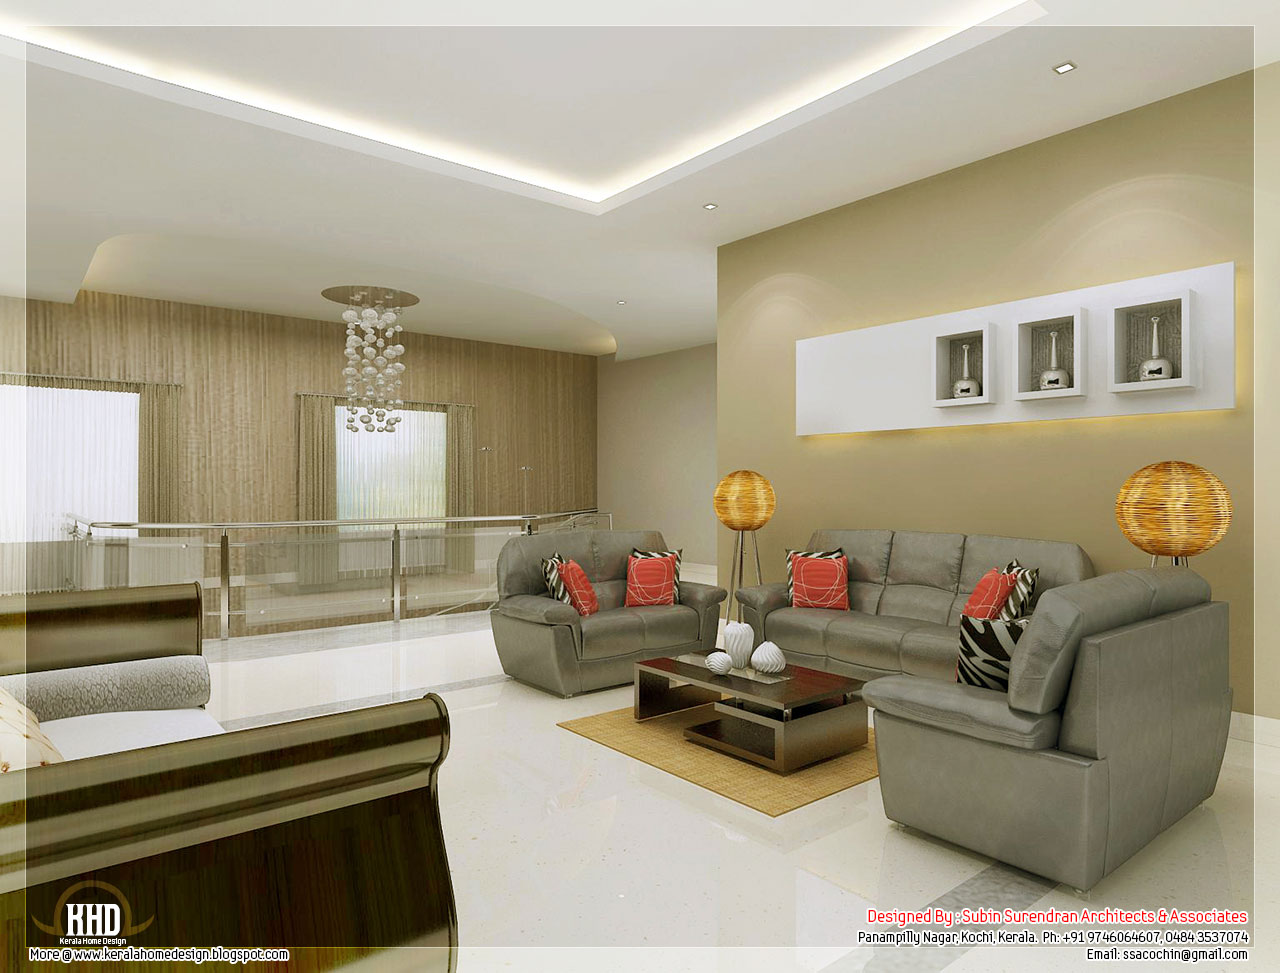 Awesome 3d interior renderings kerala home design and - Home interior designs ...